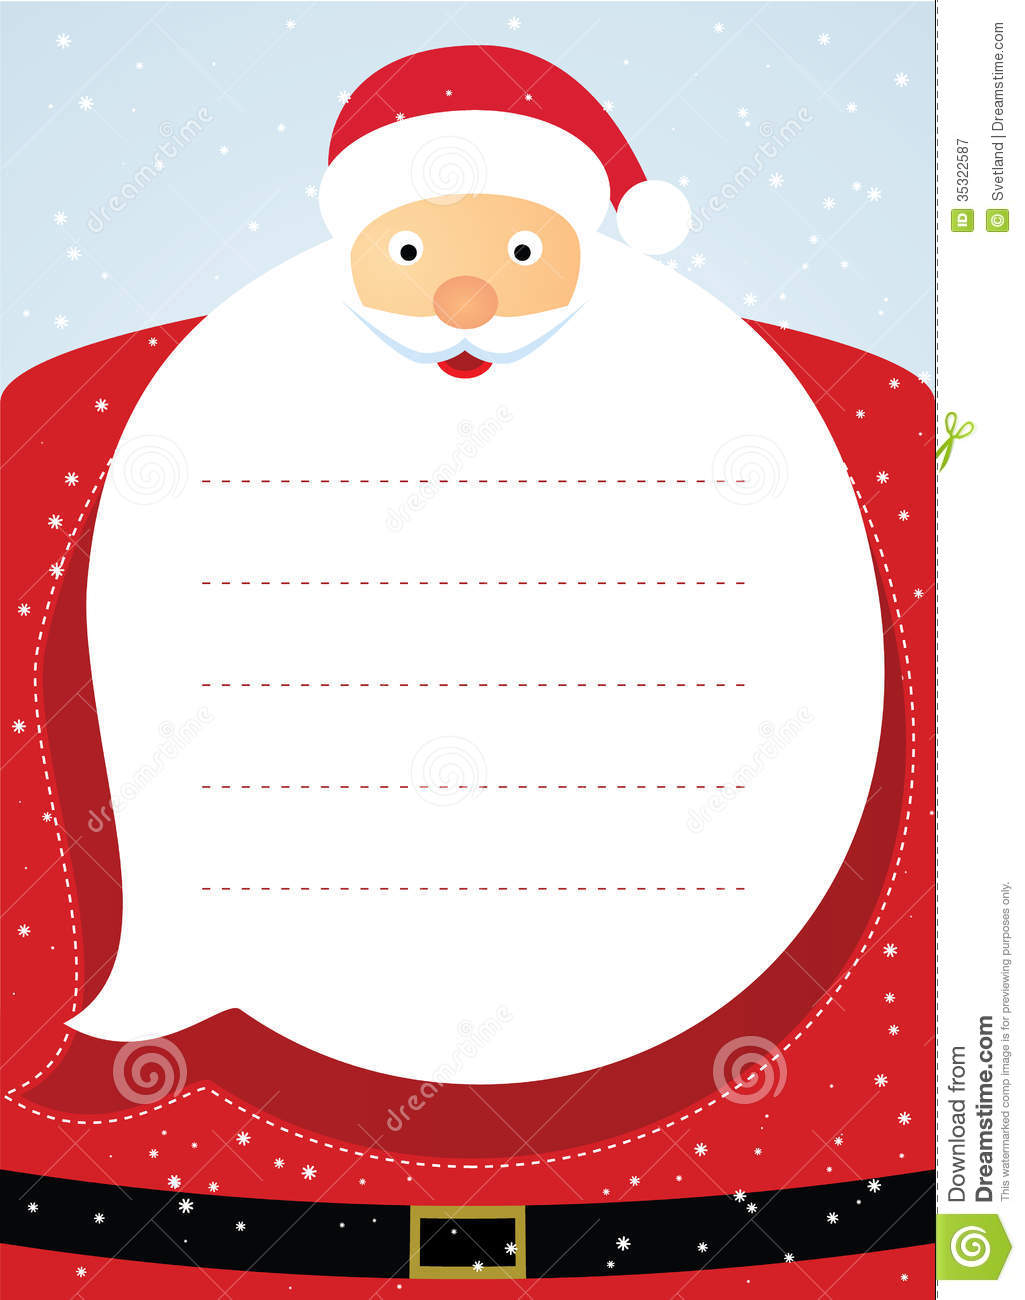 Santa Claus Christmas Card Stock Vector Illustration Of Clip